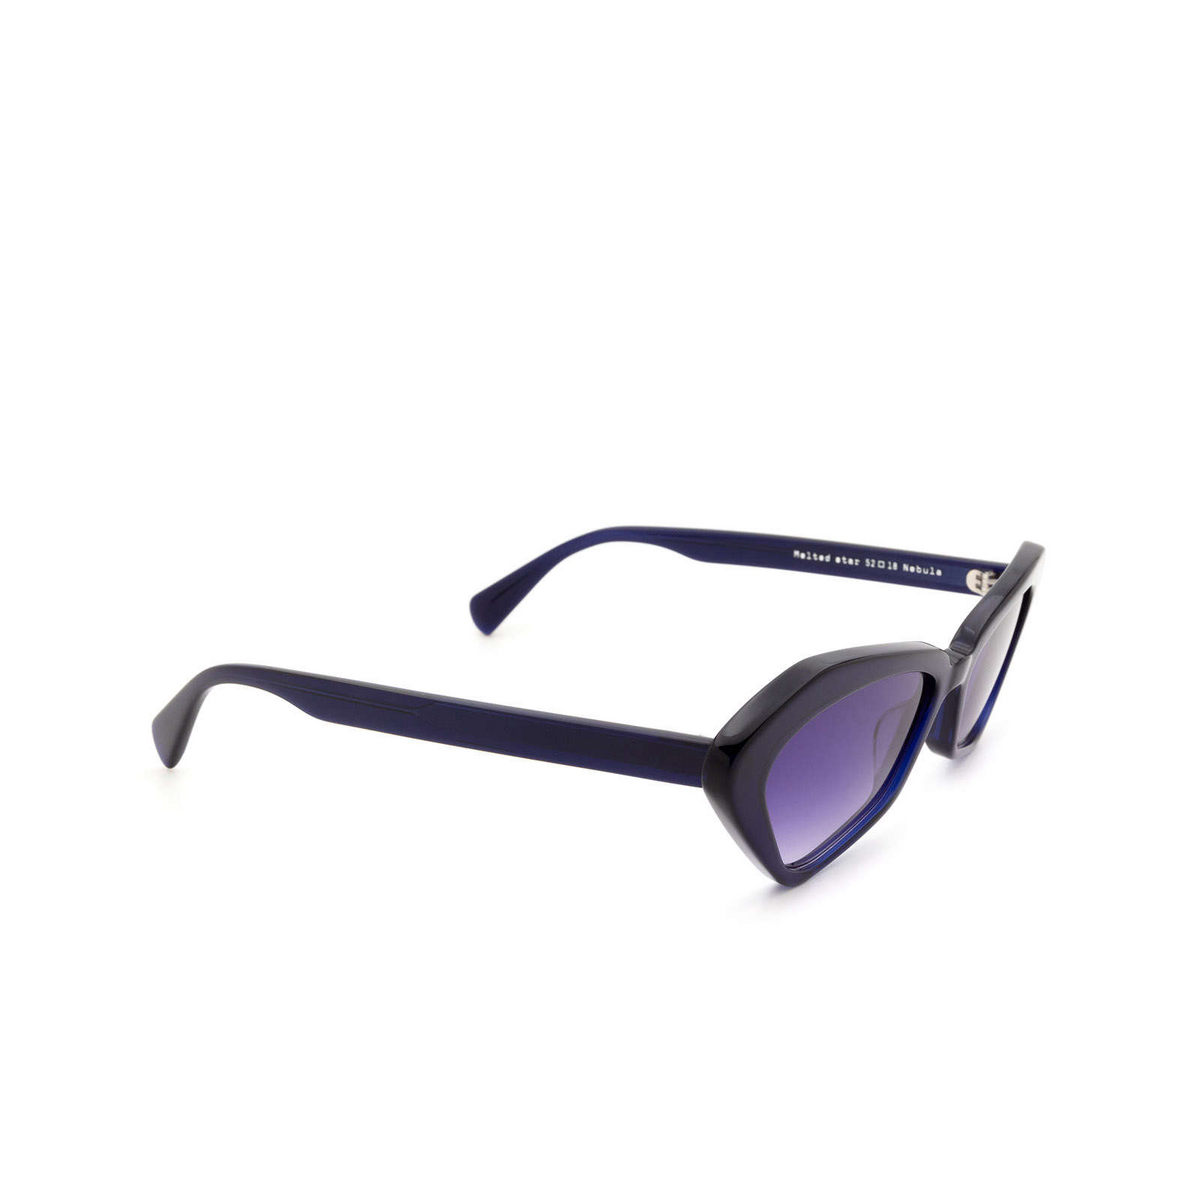 Chimi® Irregular Sunglasses: Space Melted Star color Blue Nebula - three-quarters view.